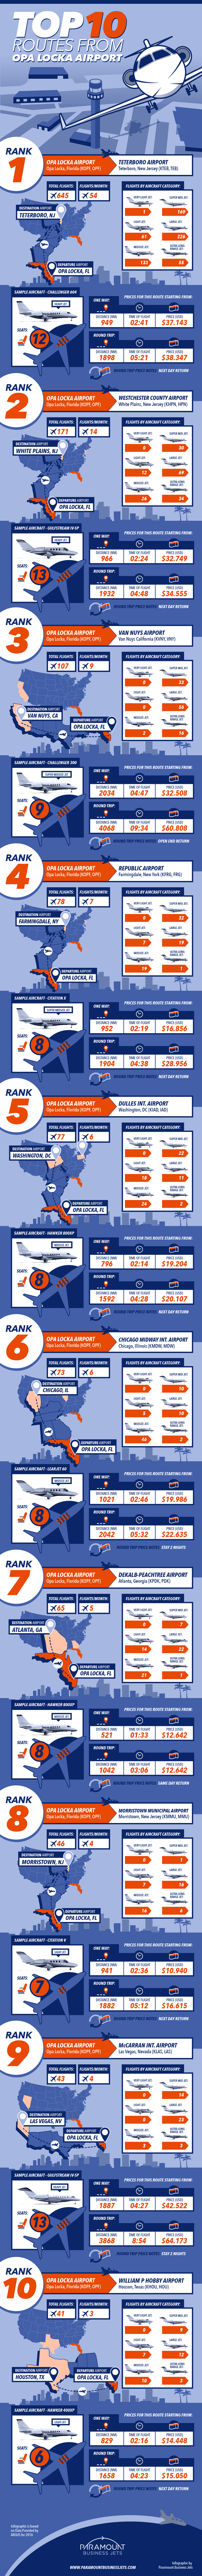 Top 10 routes Opa Locka Airport